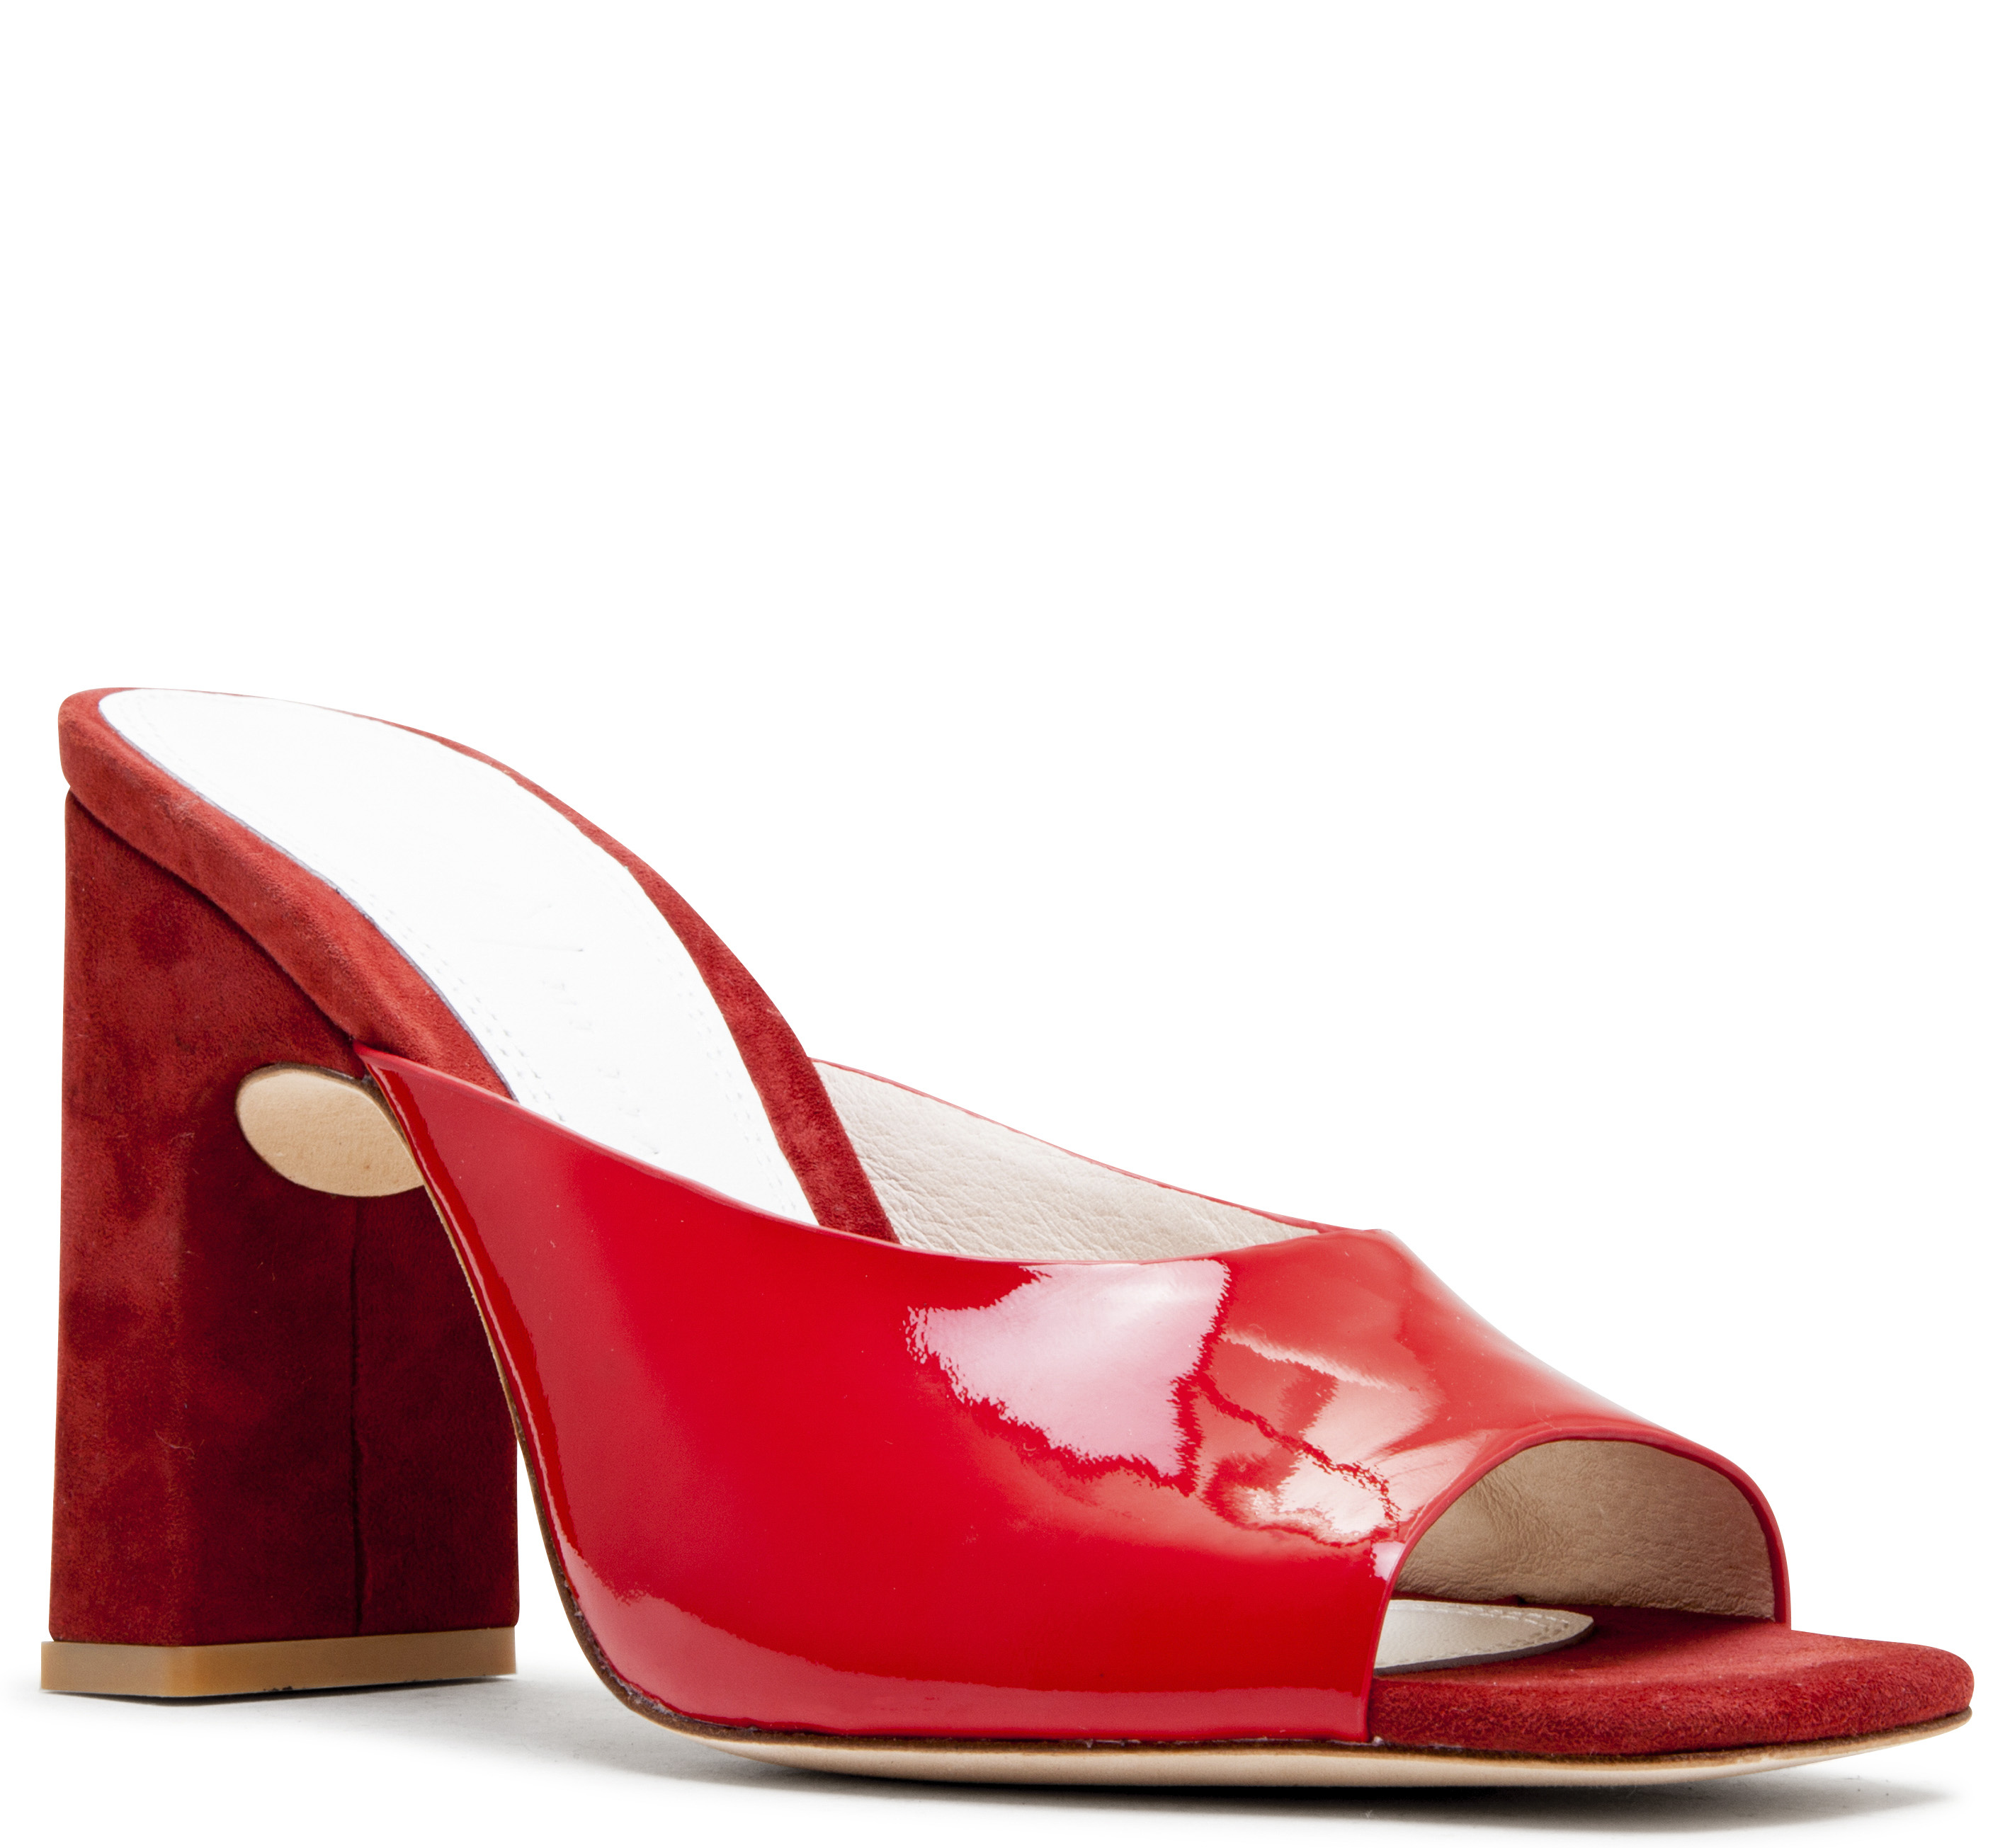 heaven_patent-lth-red-1